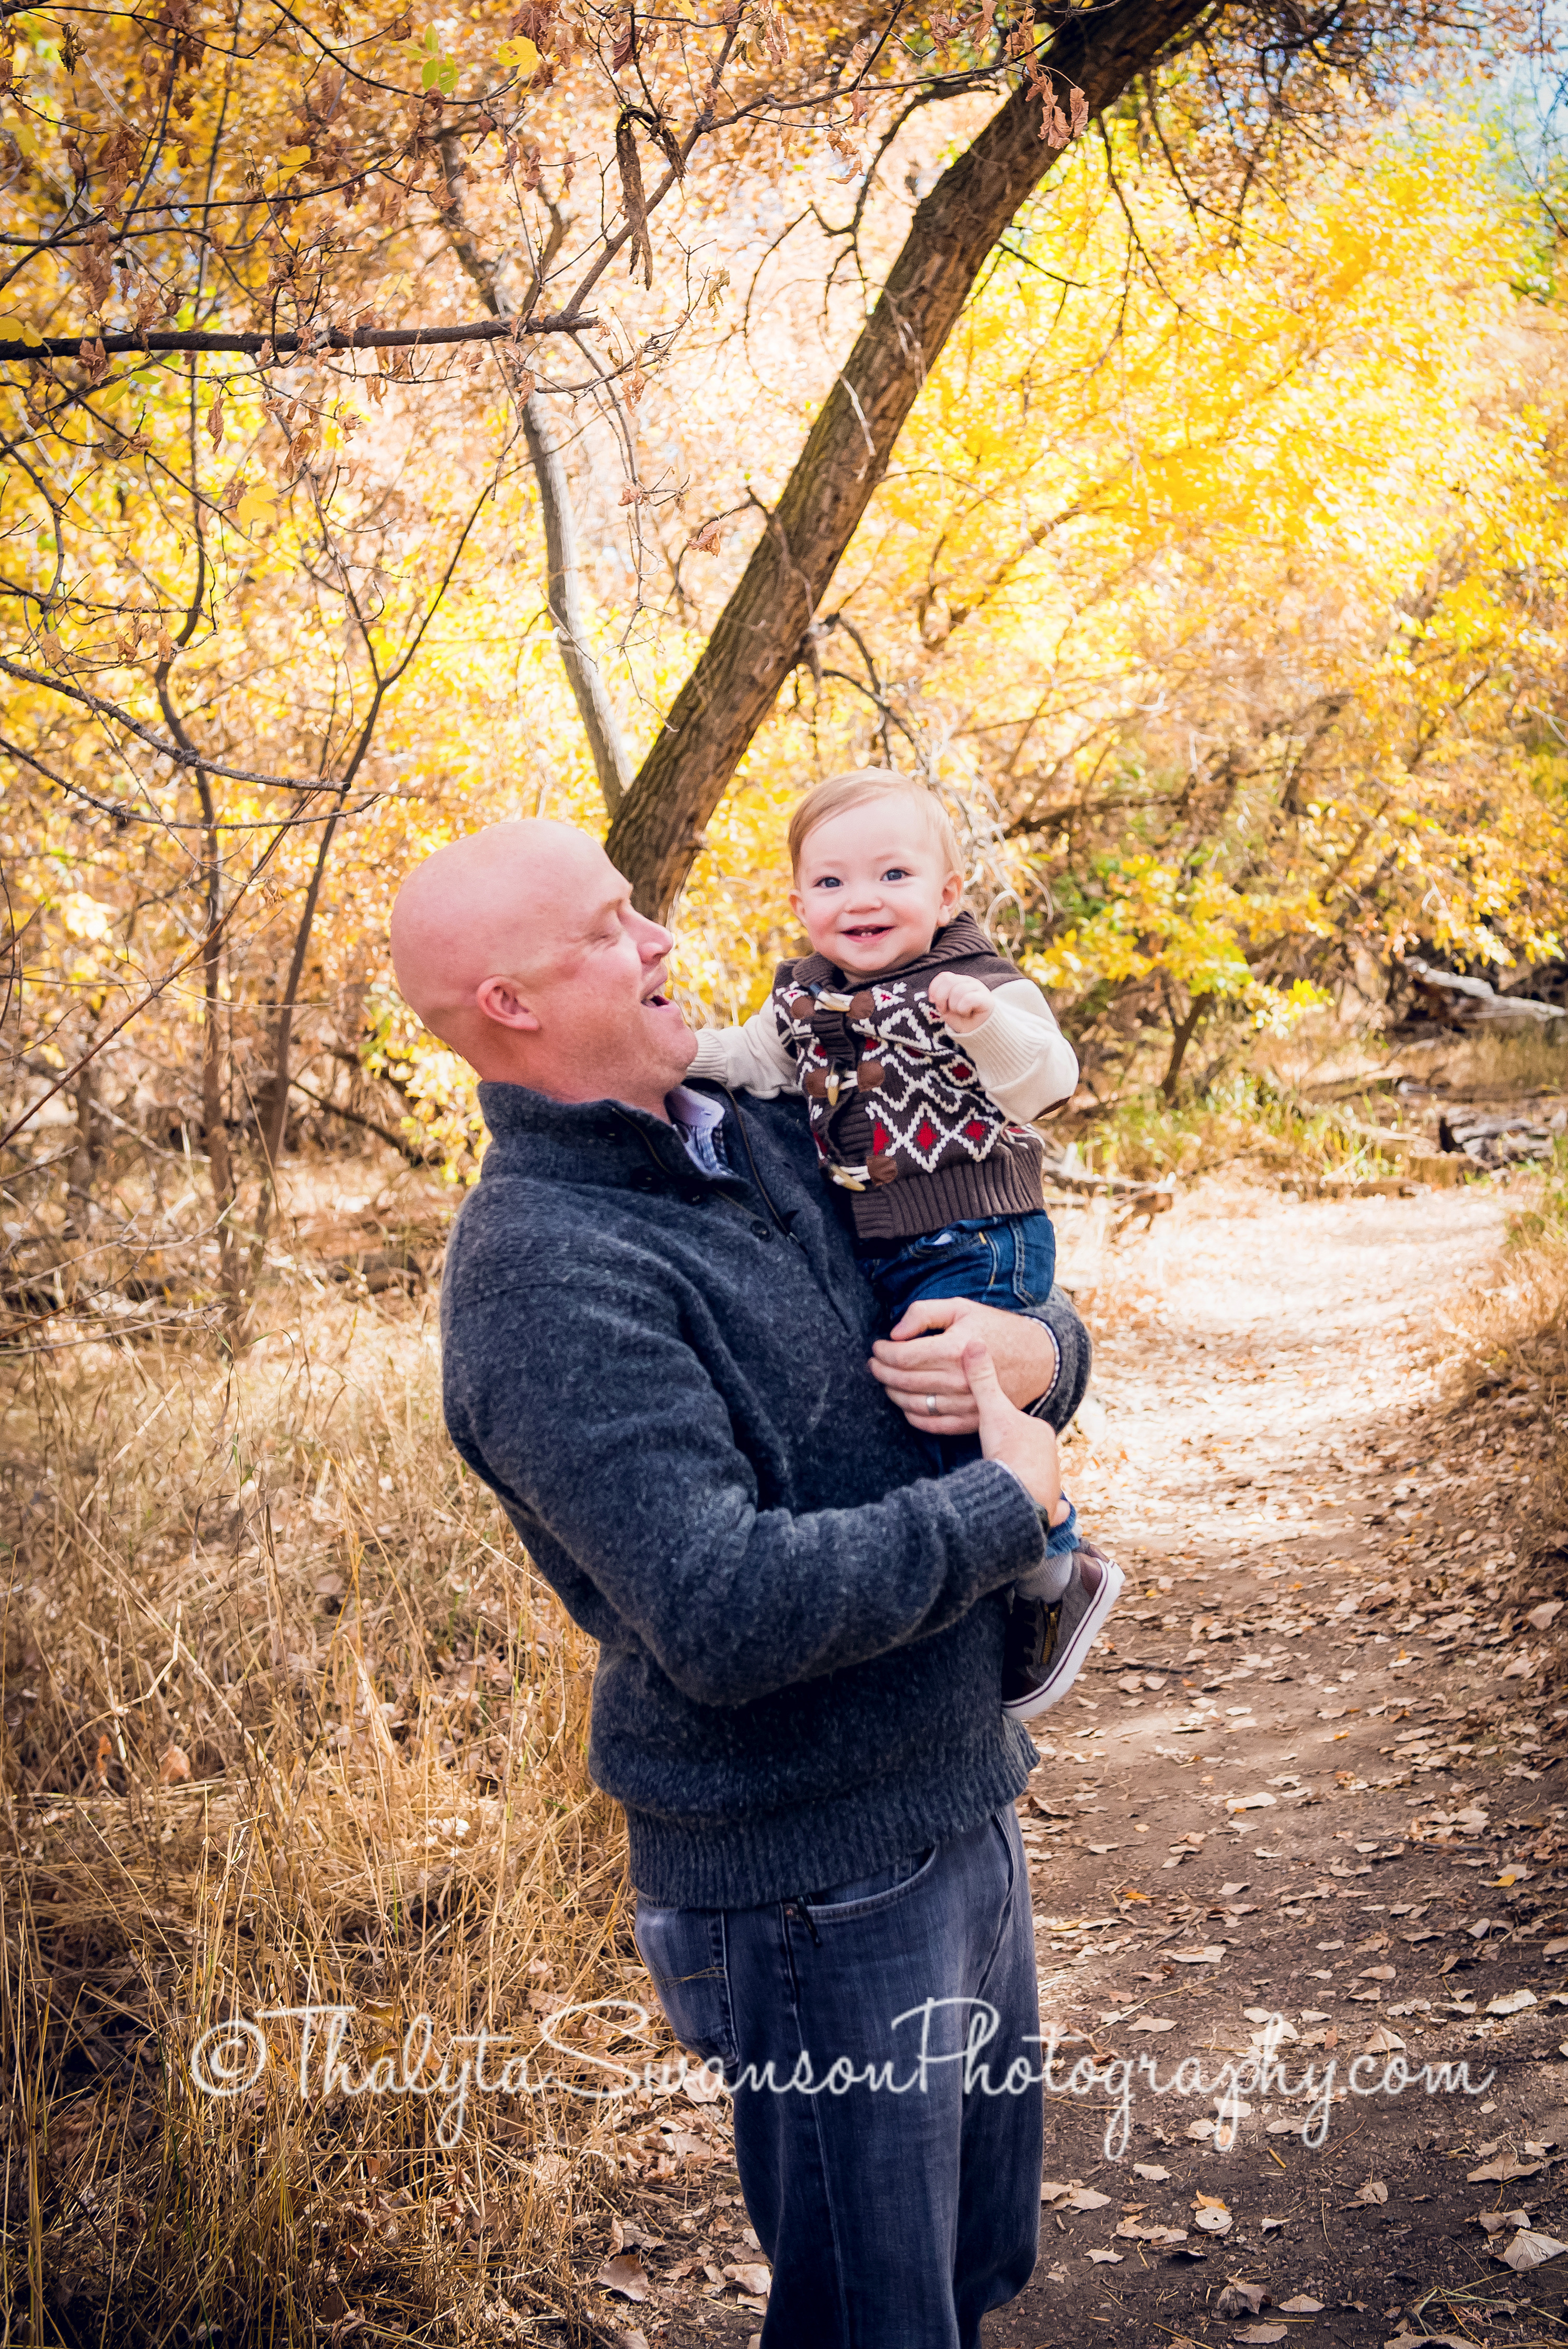 fort-collins-photographer-thalyta-swanson-photography-fall-mini-session-6